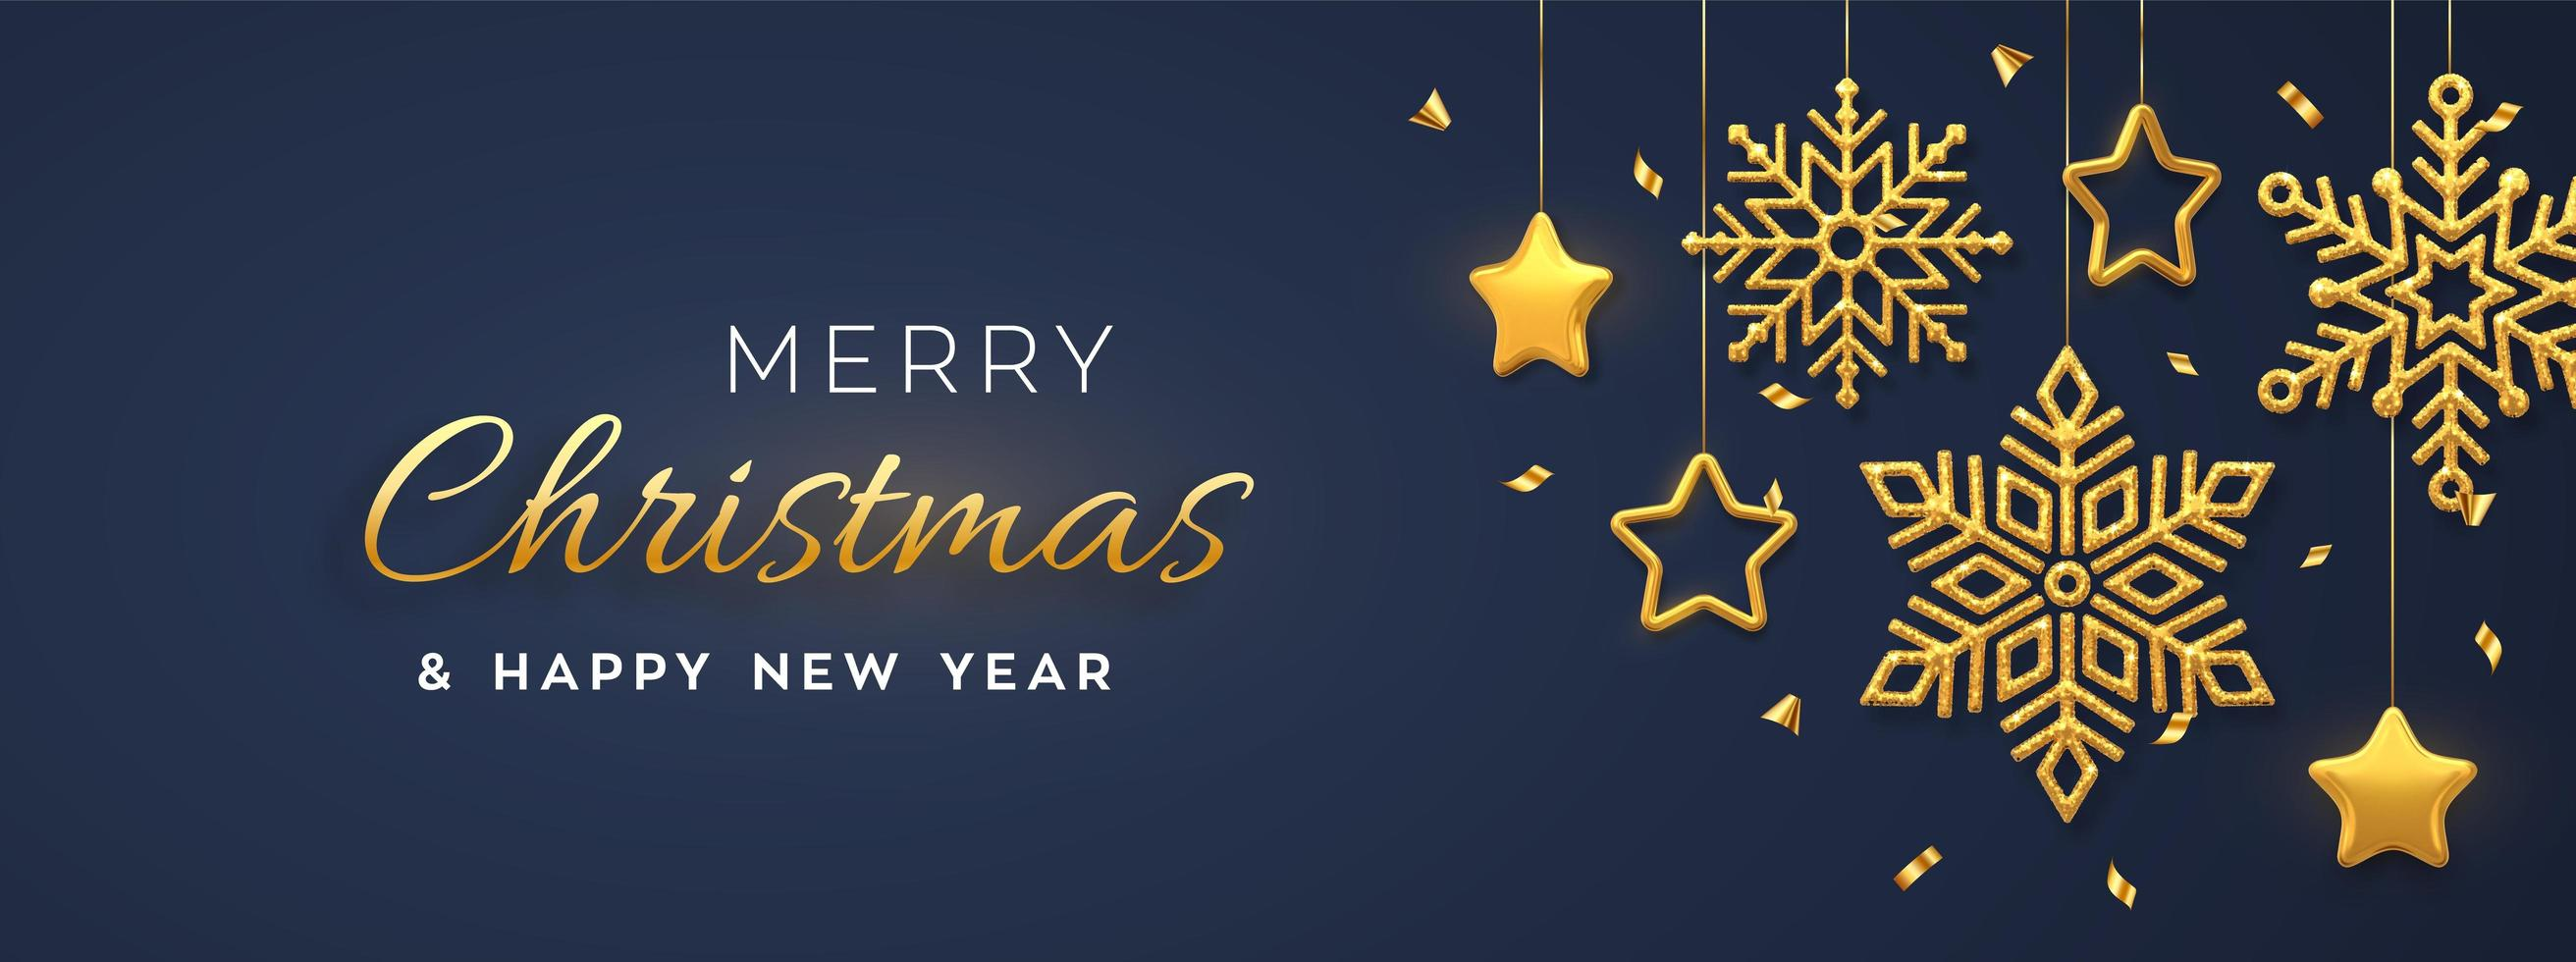 Christmas blue background with hanging shining golden snowflakes and 3D metallic stars. Merry christmas greeting card. Holiday Xmas and New Year poster, web banner. vector